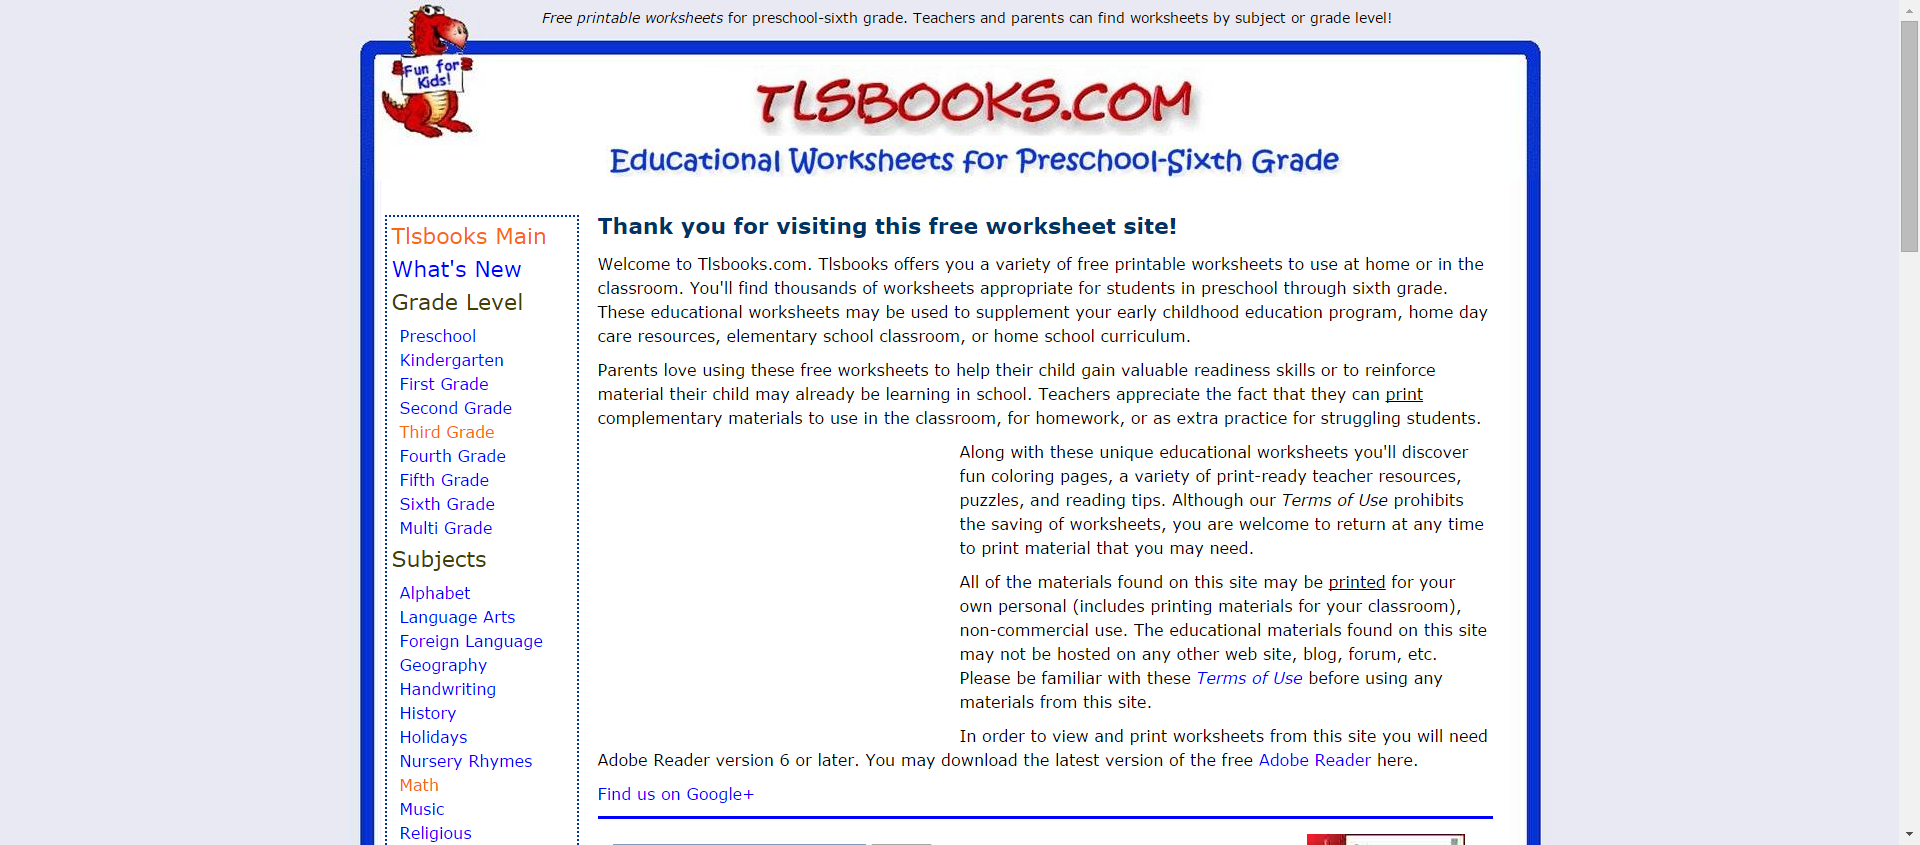 Tlsbooks Com Free Printable Worksheets For Preschool Sixth Grade In Math English And More Free Printable Worksheets Sixth Grade Printable Worksheets